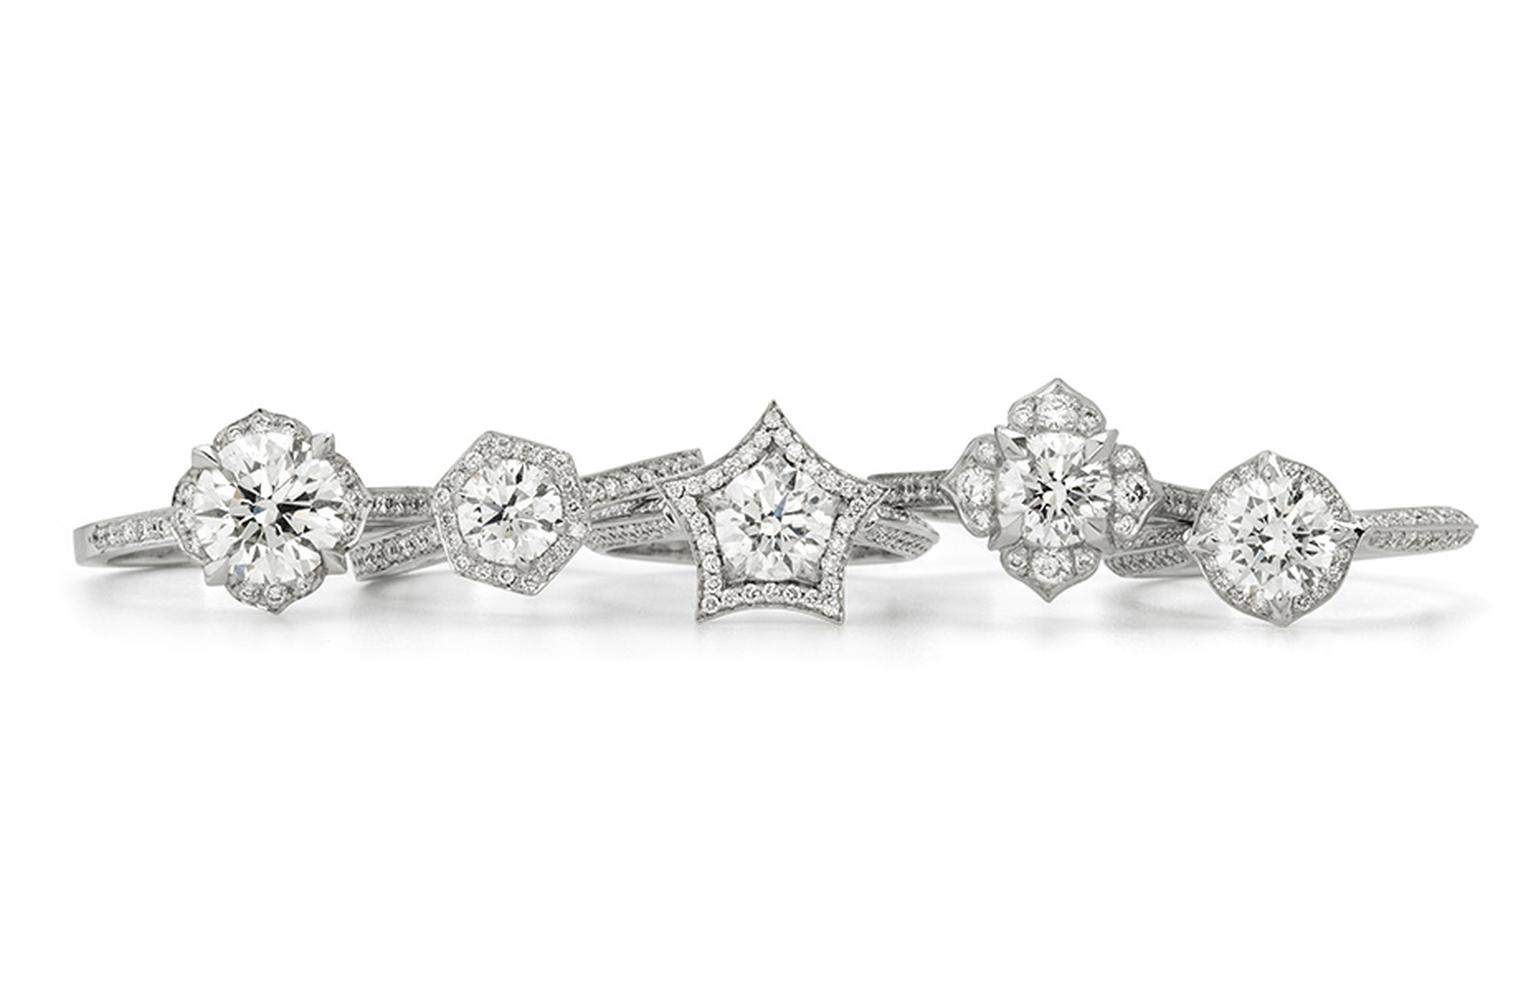 Set with Forevermark diamonds